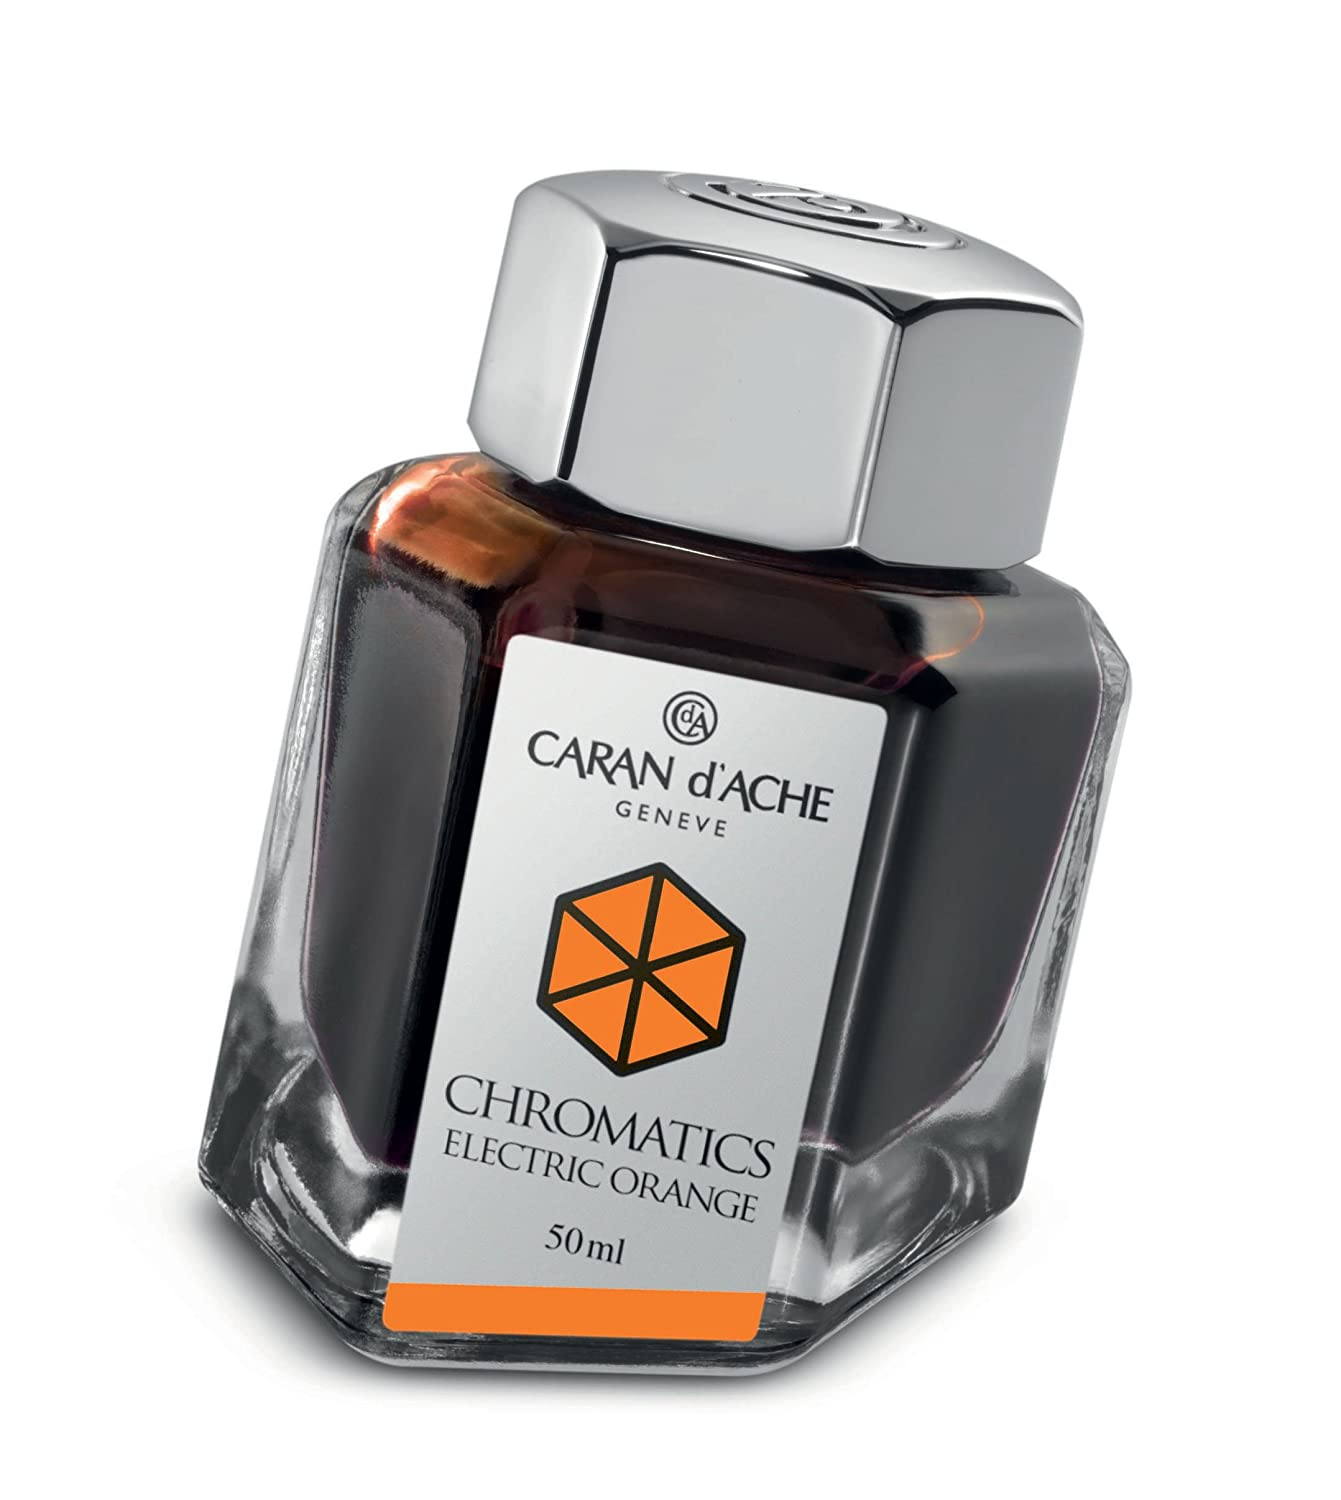 Caran d'Ache Chromatics - Inchiostro 50 ml, Colore: Blu Caran d' Ache 8011.14